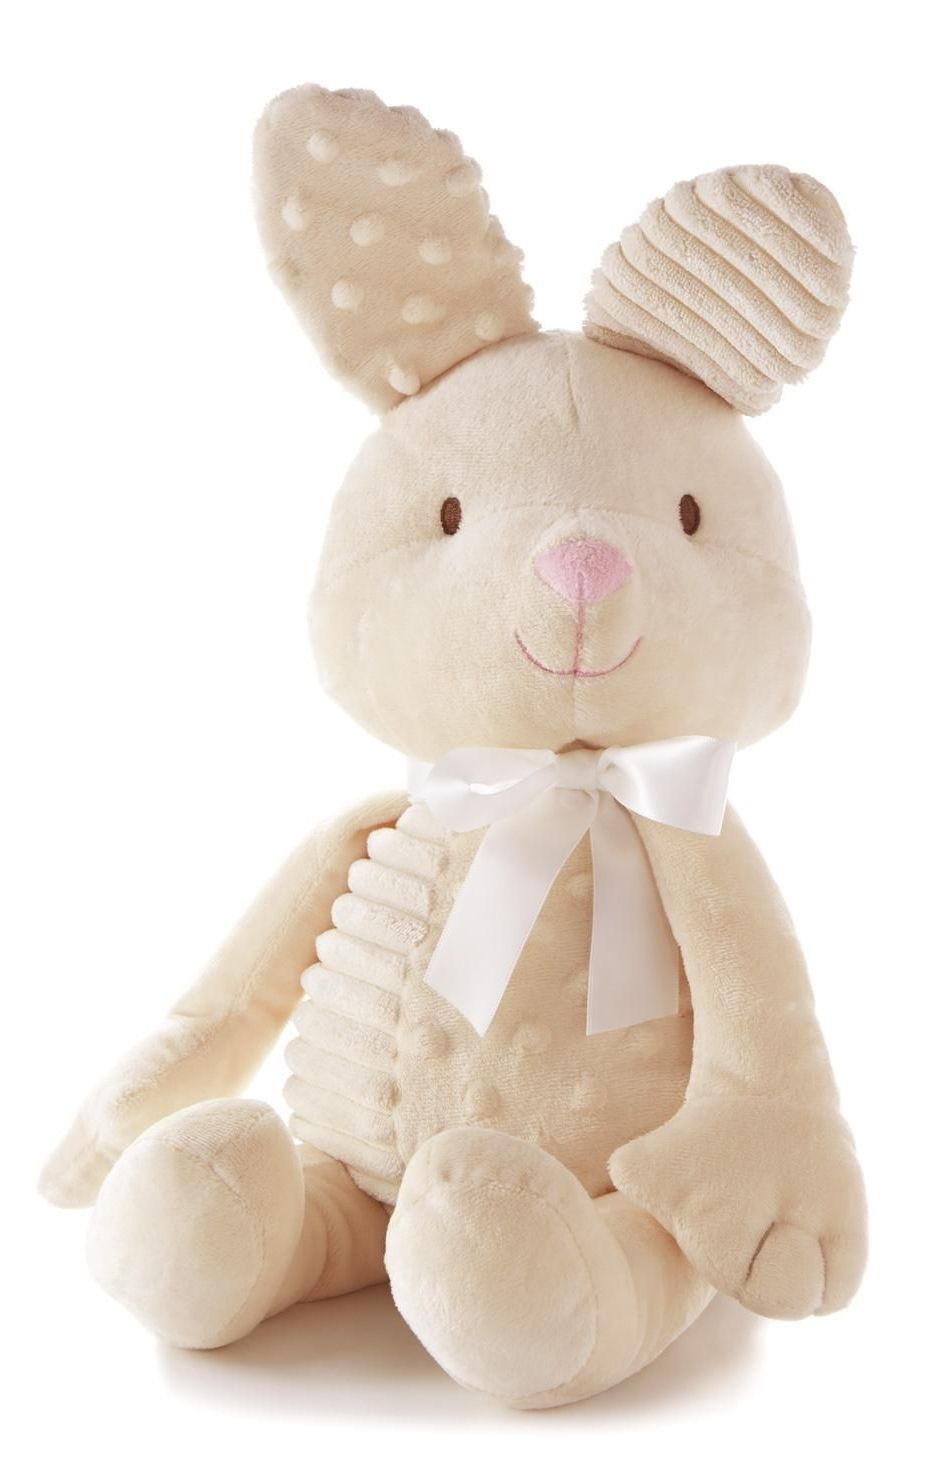 Somebunny is going to love this cute baby gift from hallmark baby somebunny is going to love this cute baby gift from hallmark negle Image collections